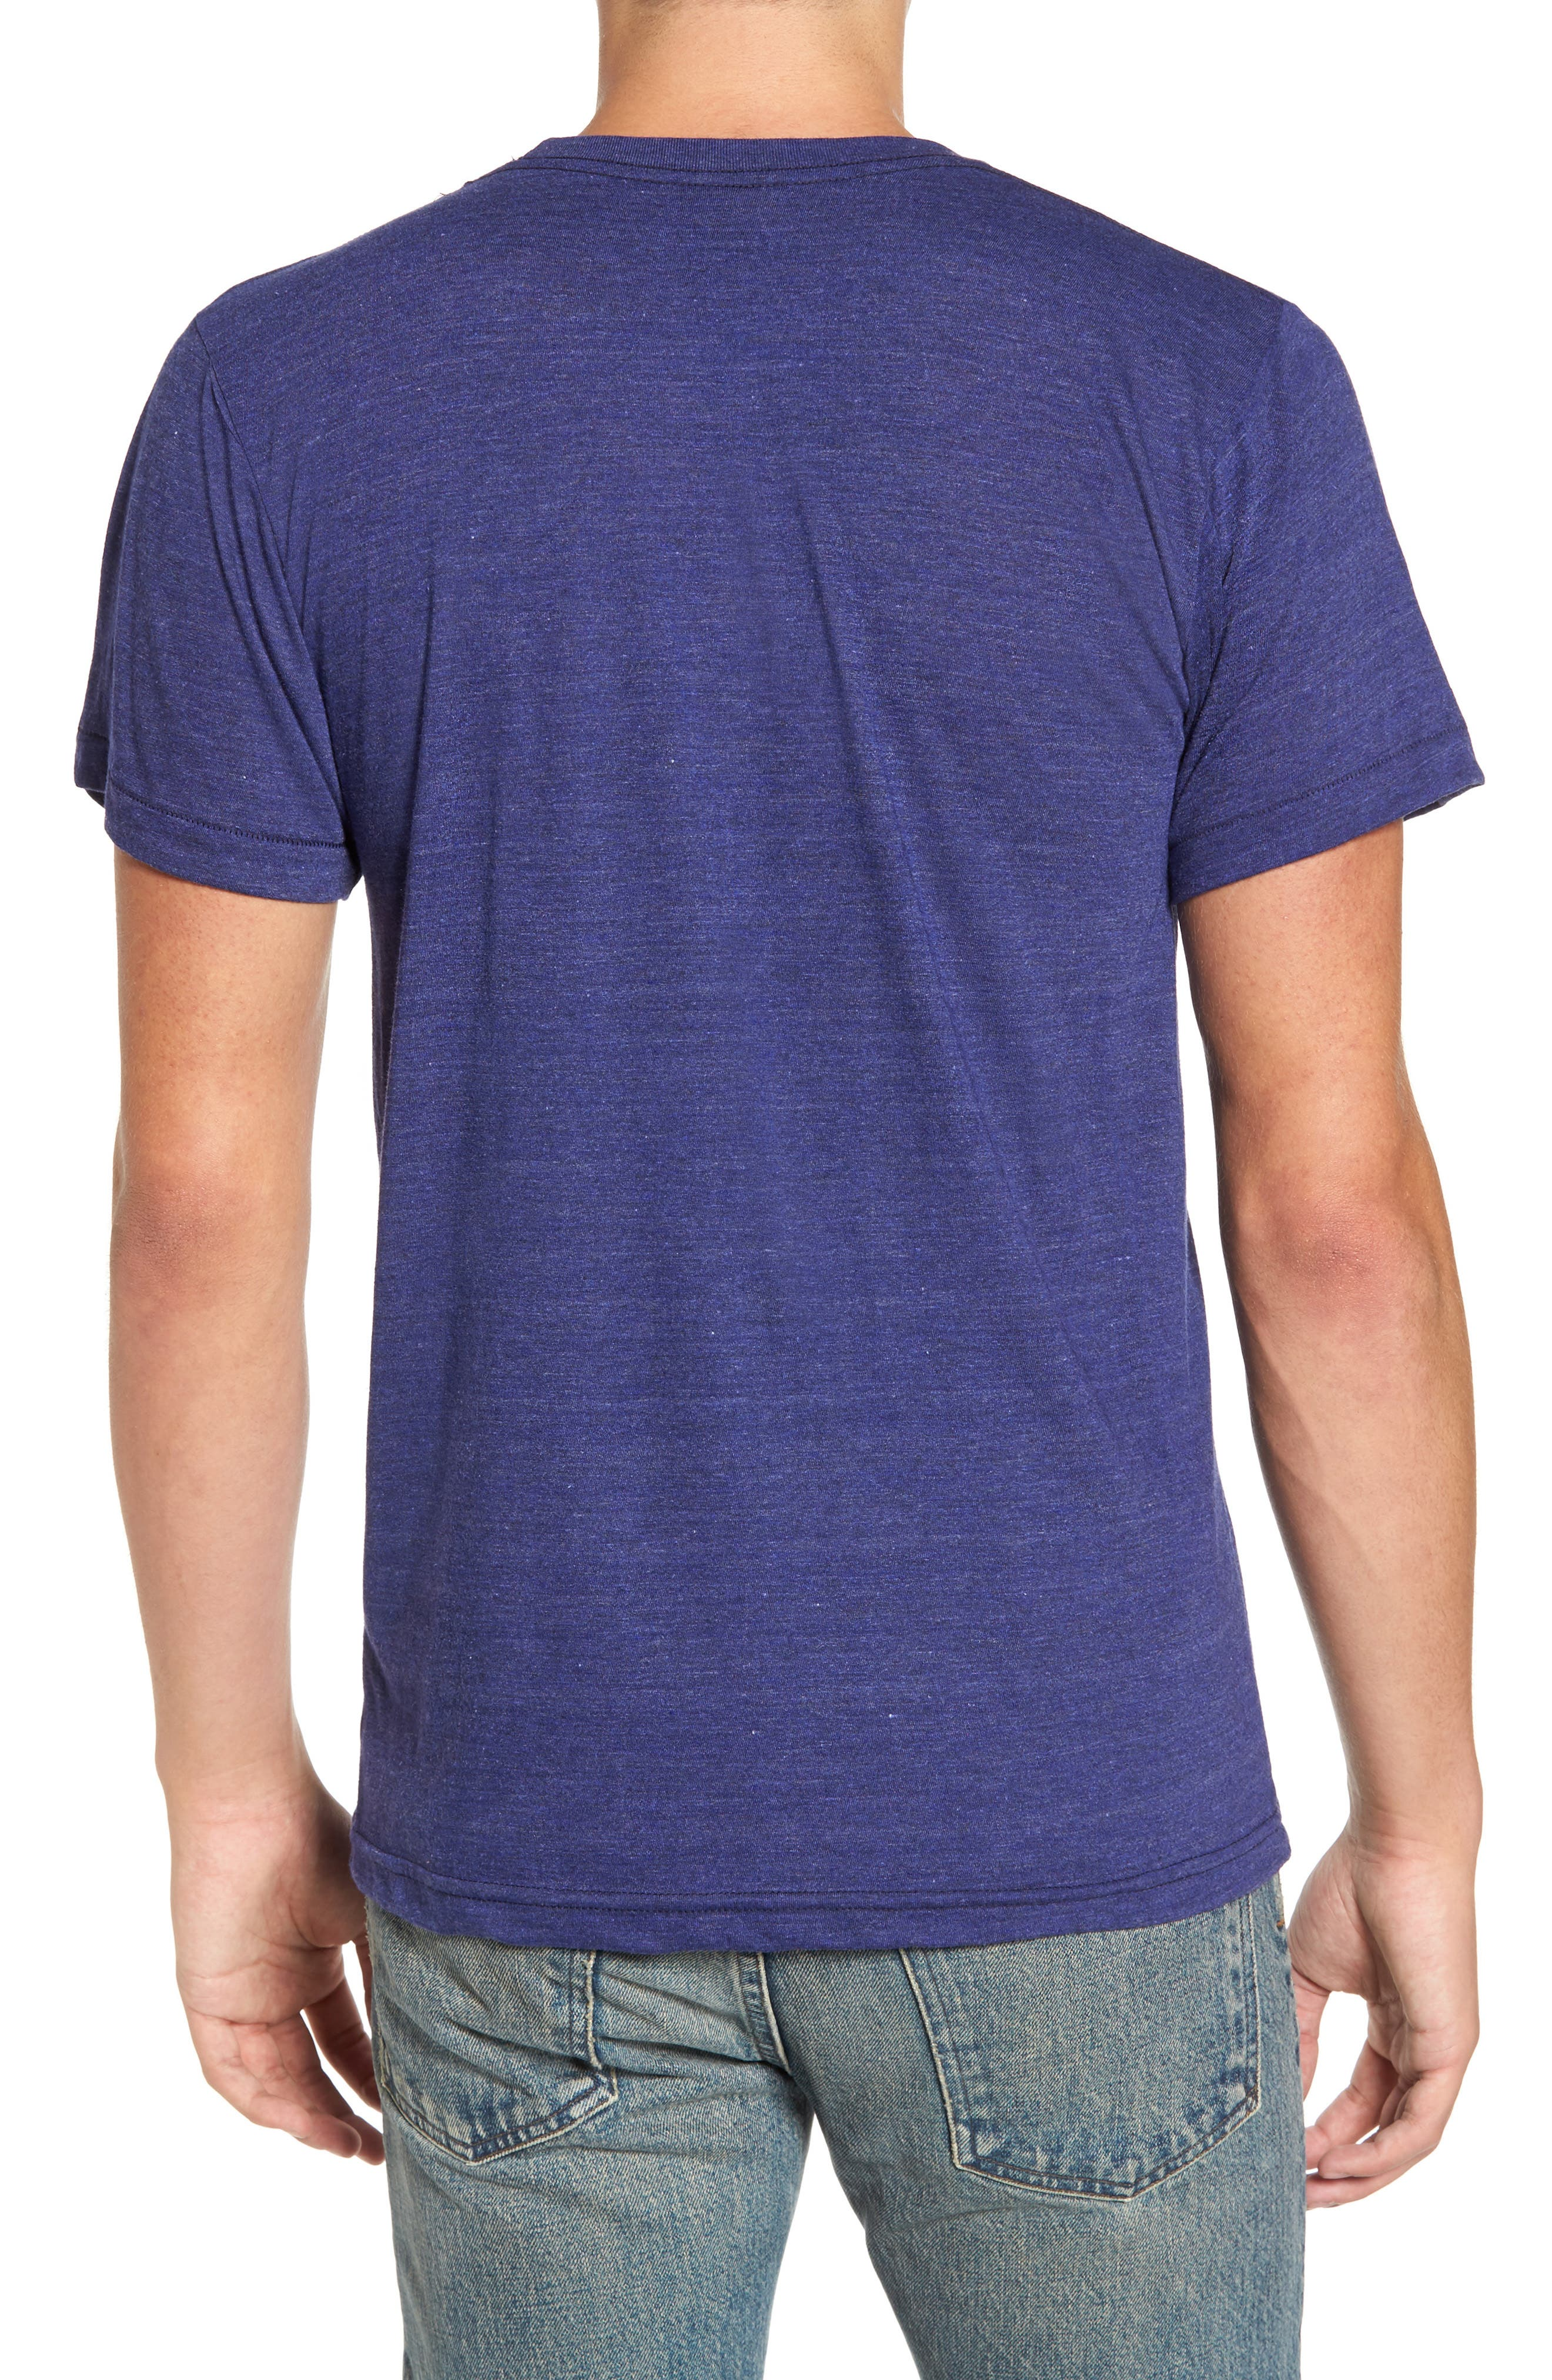 Johnny Tree Embroidered T-Shirt,                             Alternate thumbnail 2, color,                             408